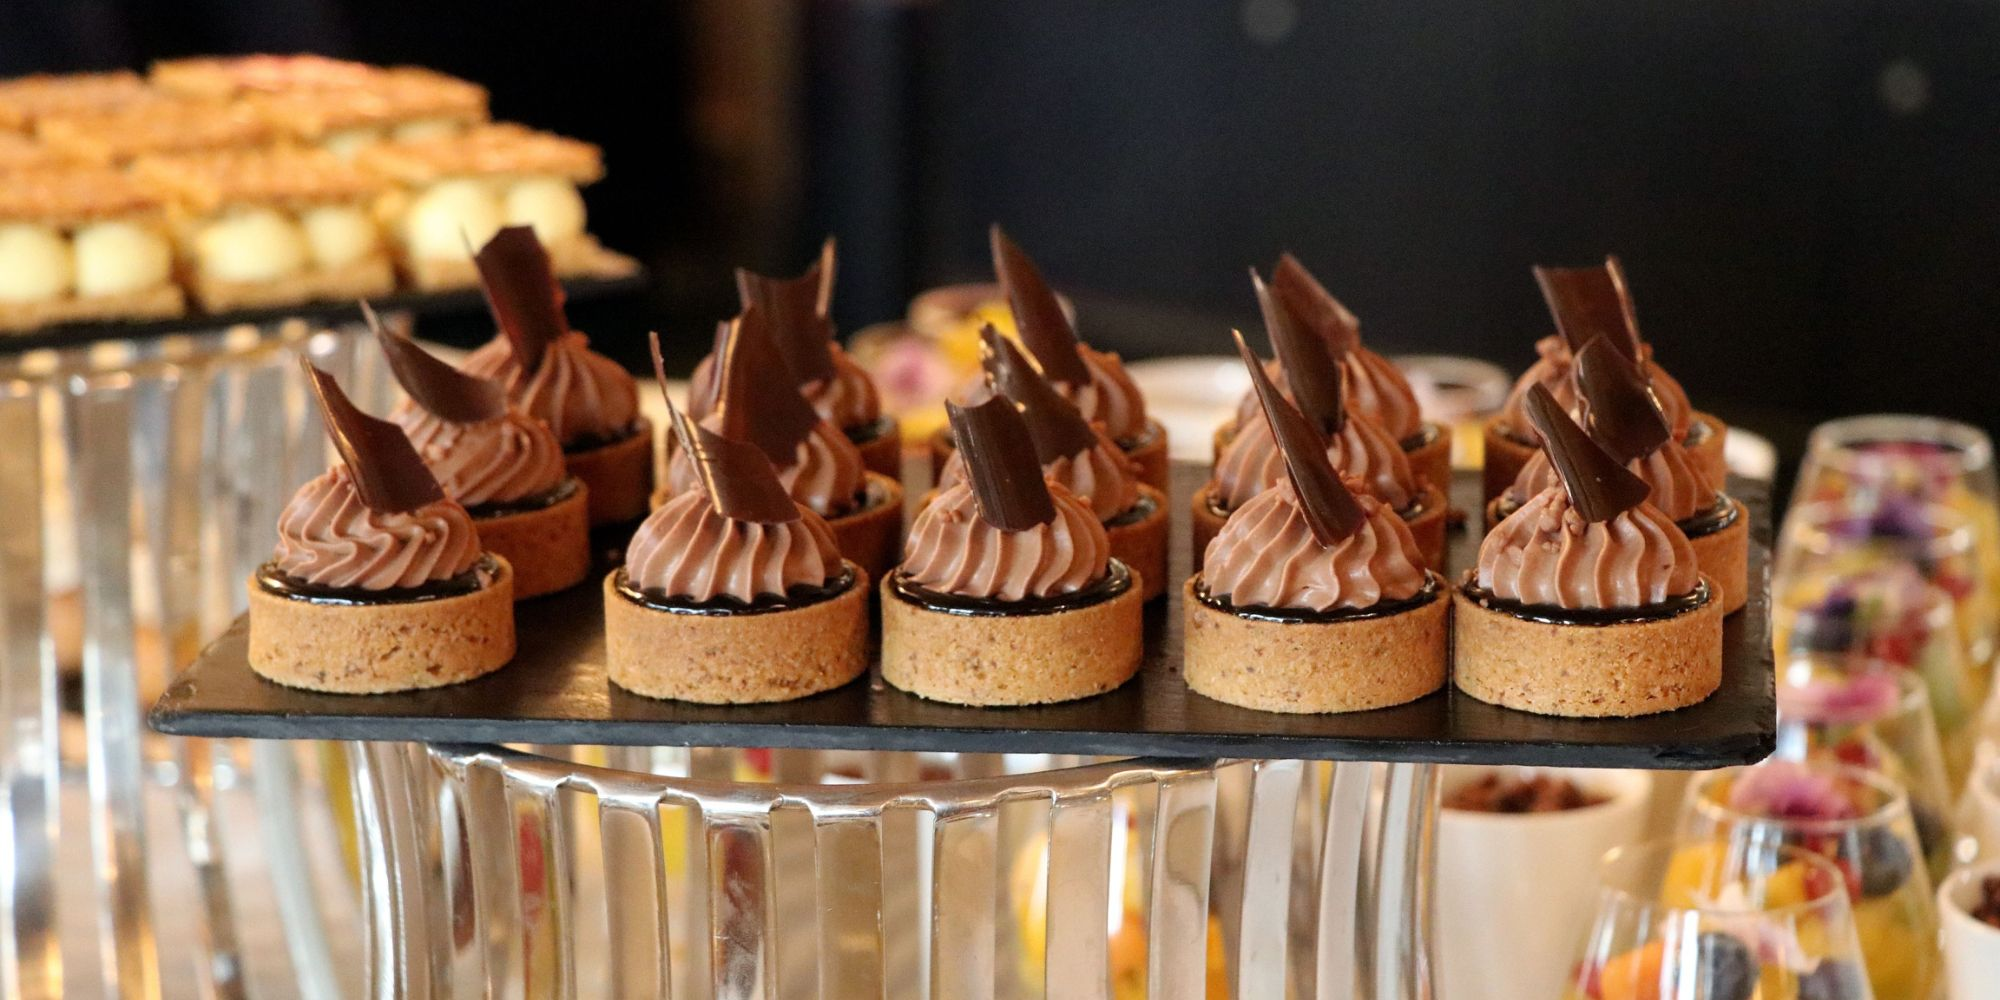 Brunch Café de la Paix (75009 Paris)